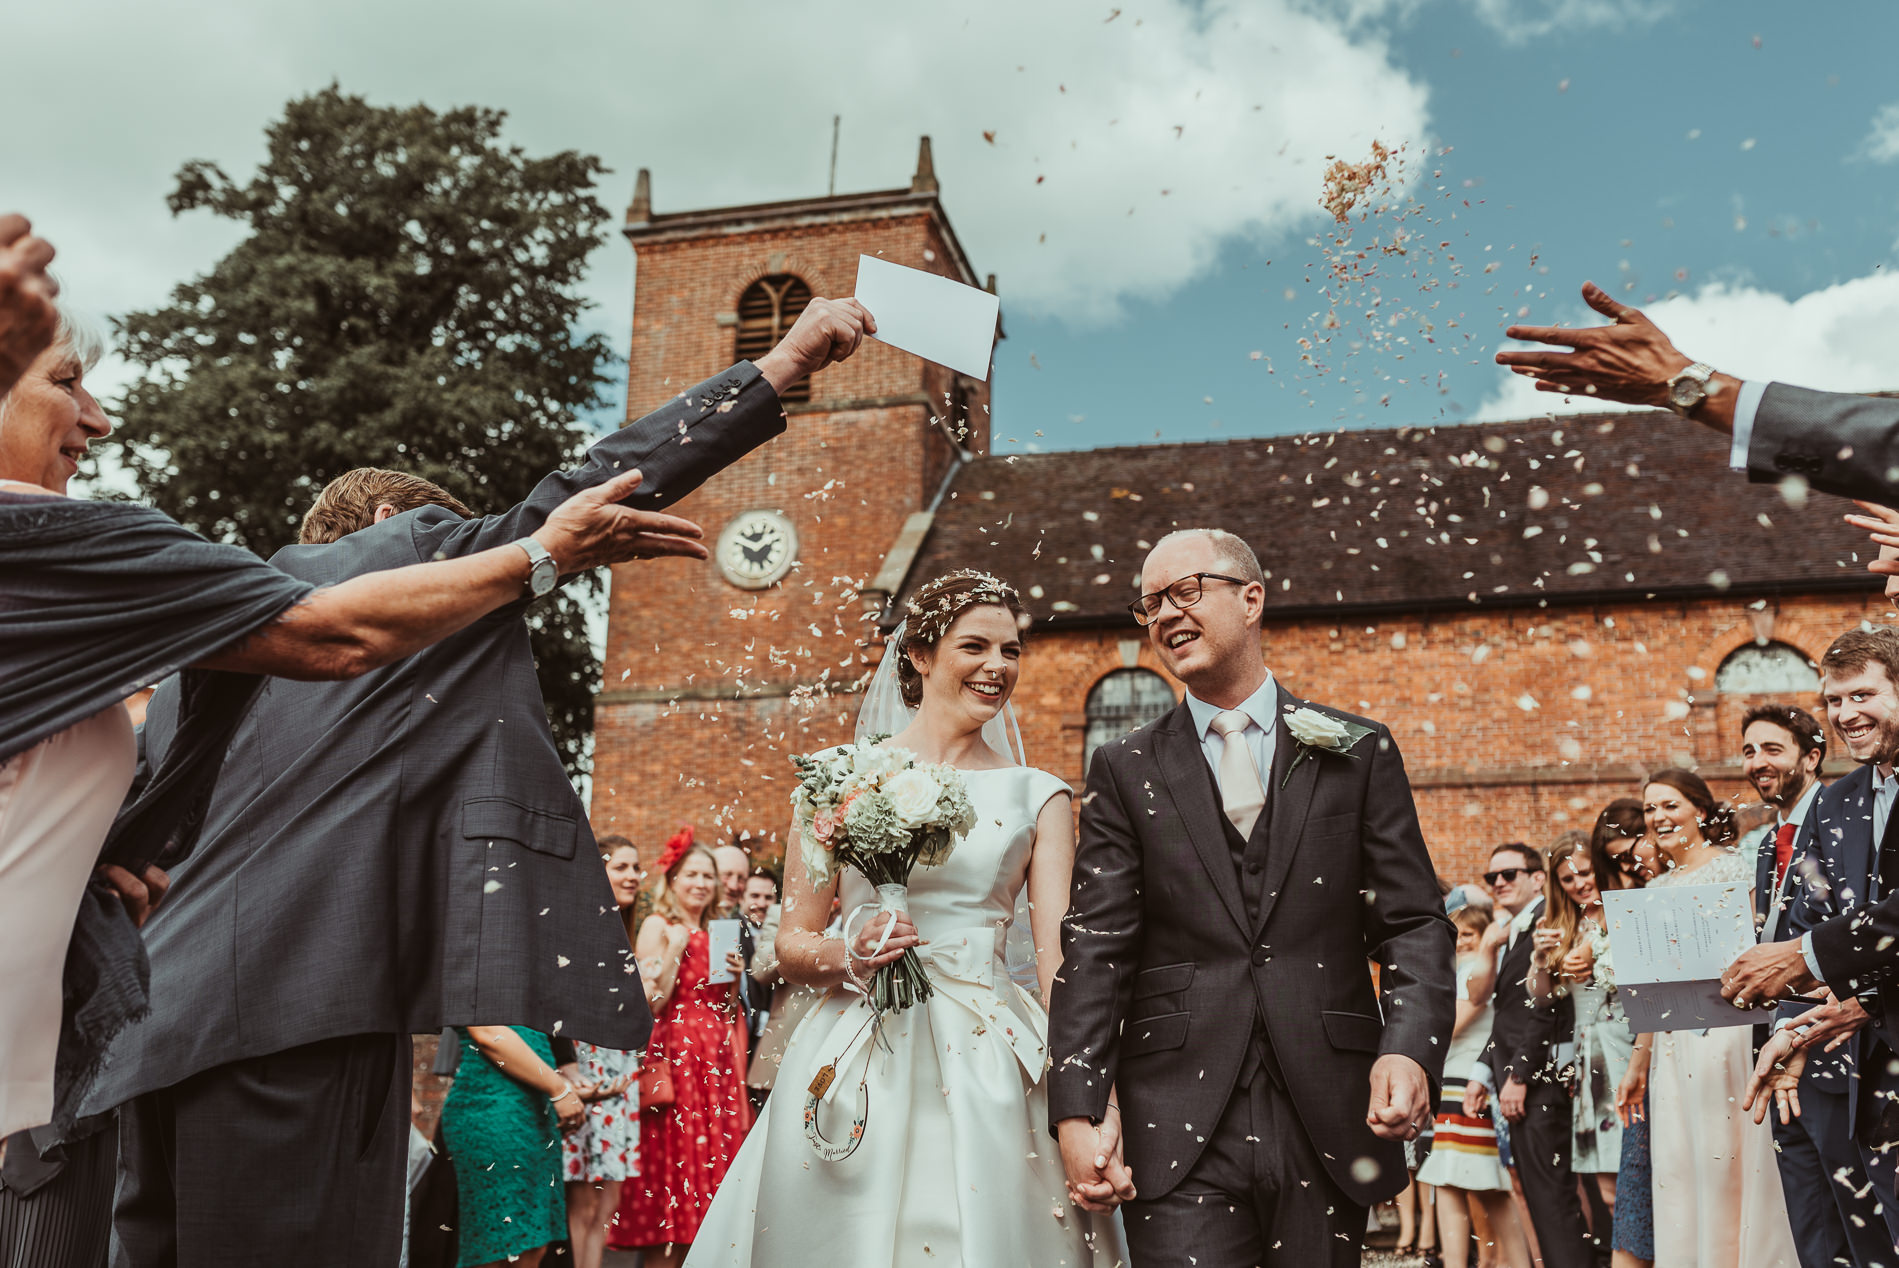 Throwing Confetti Market Drayton Wedding - Jess Soper